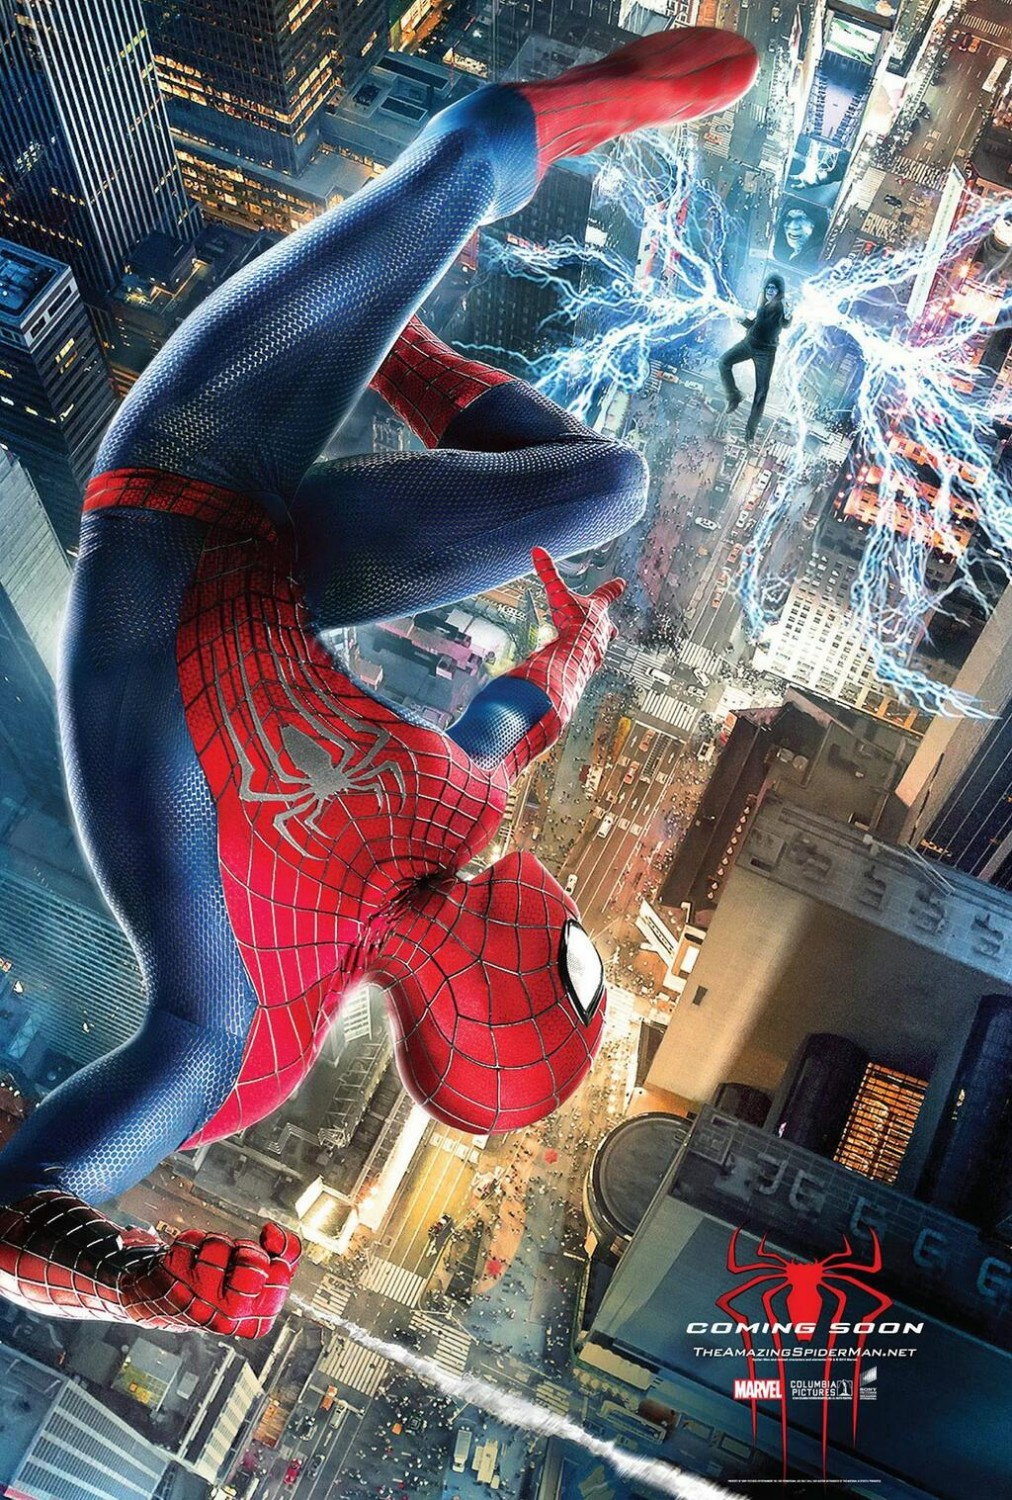 The Amazing Spider-Man 2-Official Poster Banner PROMO XLG-08JANEIRO2014-01